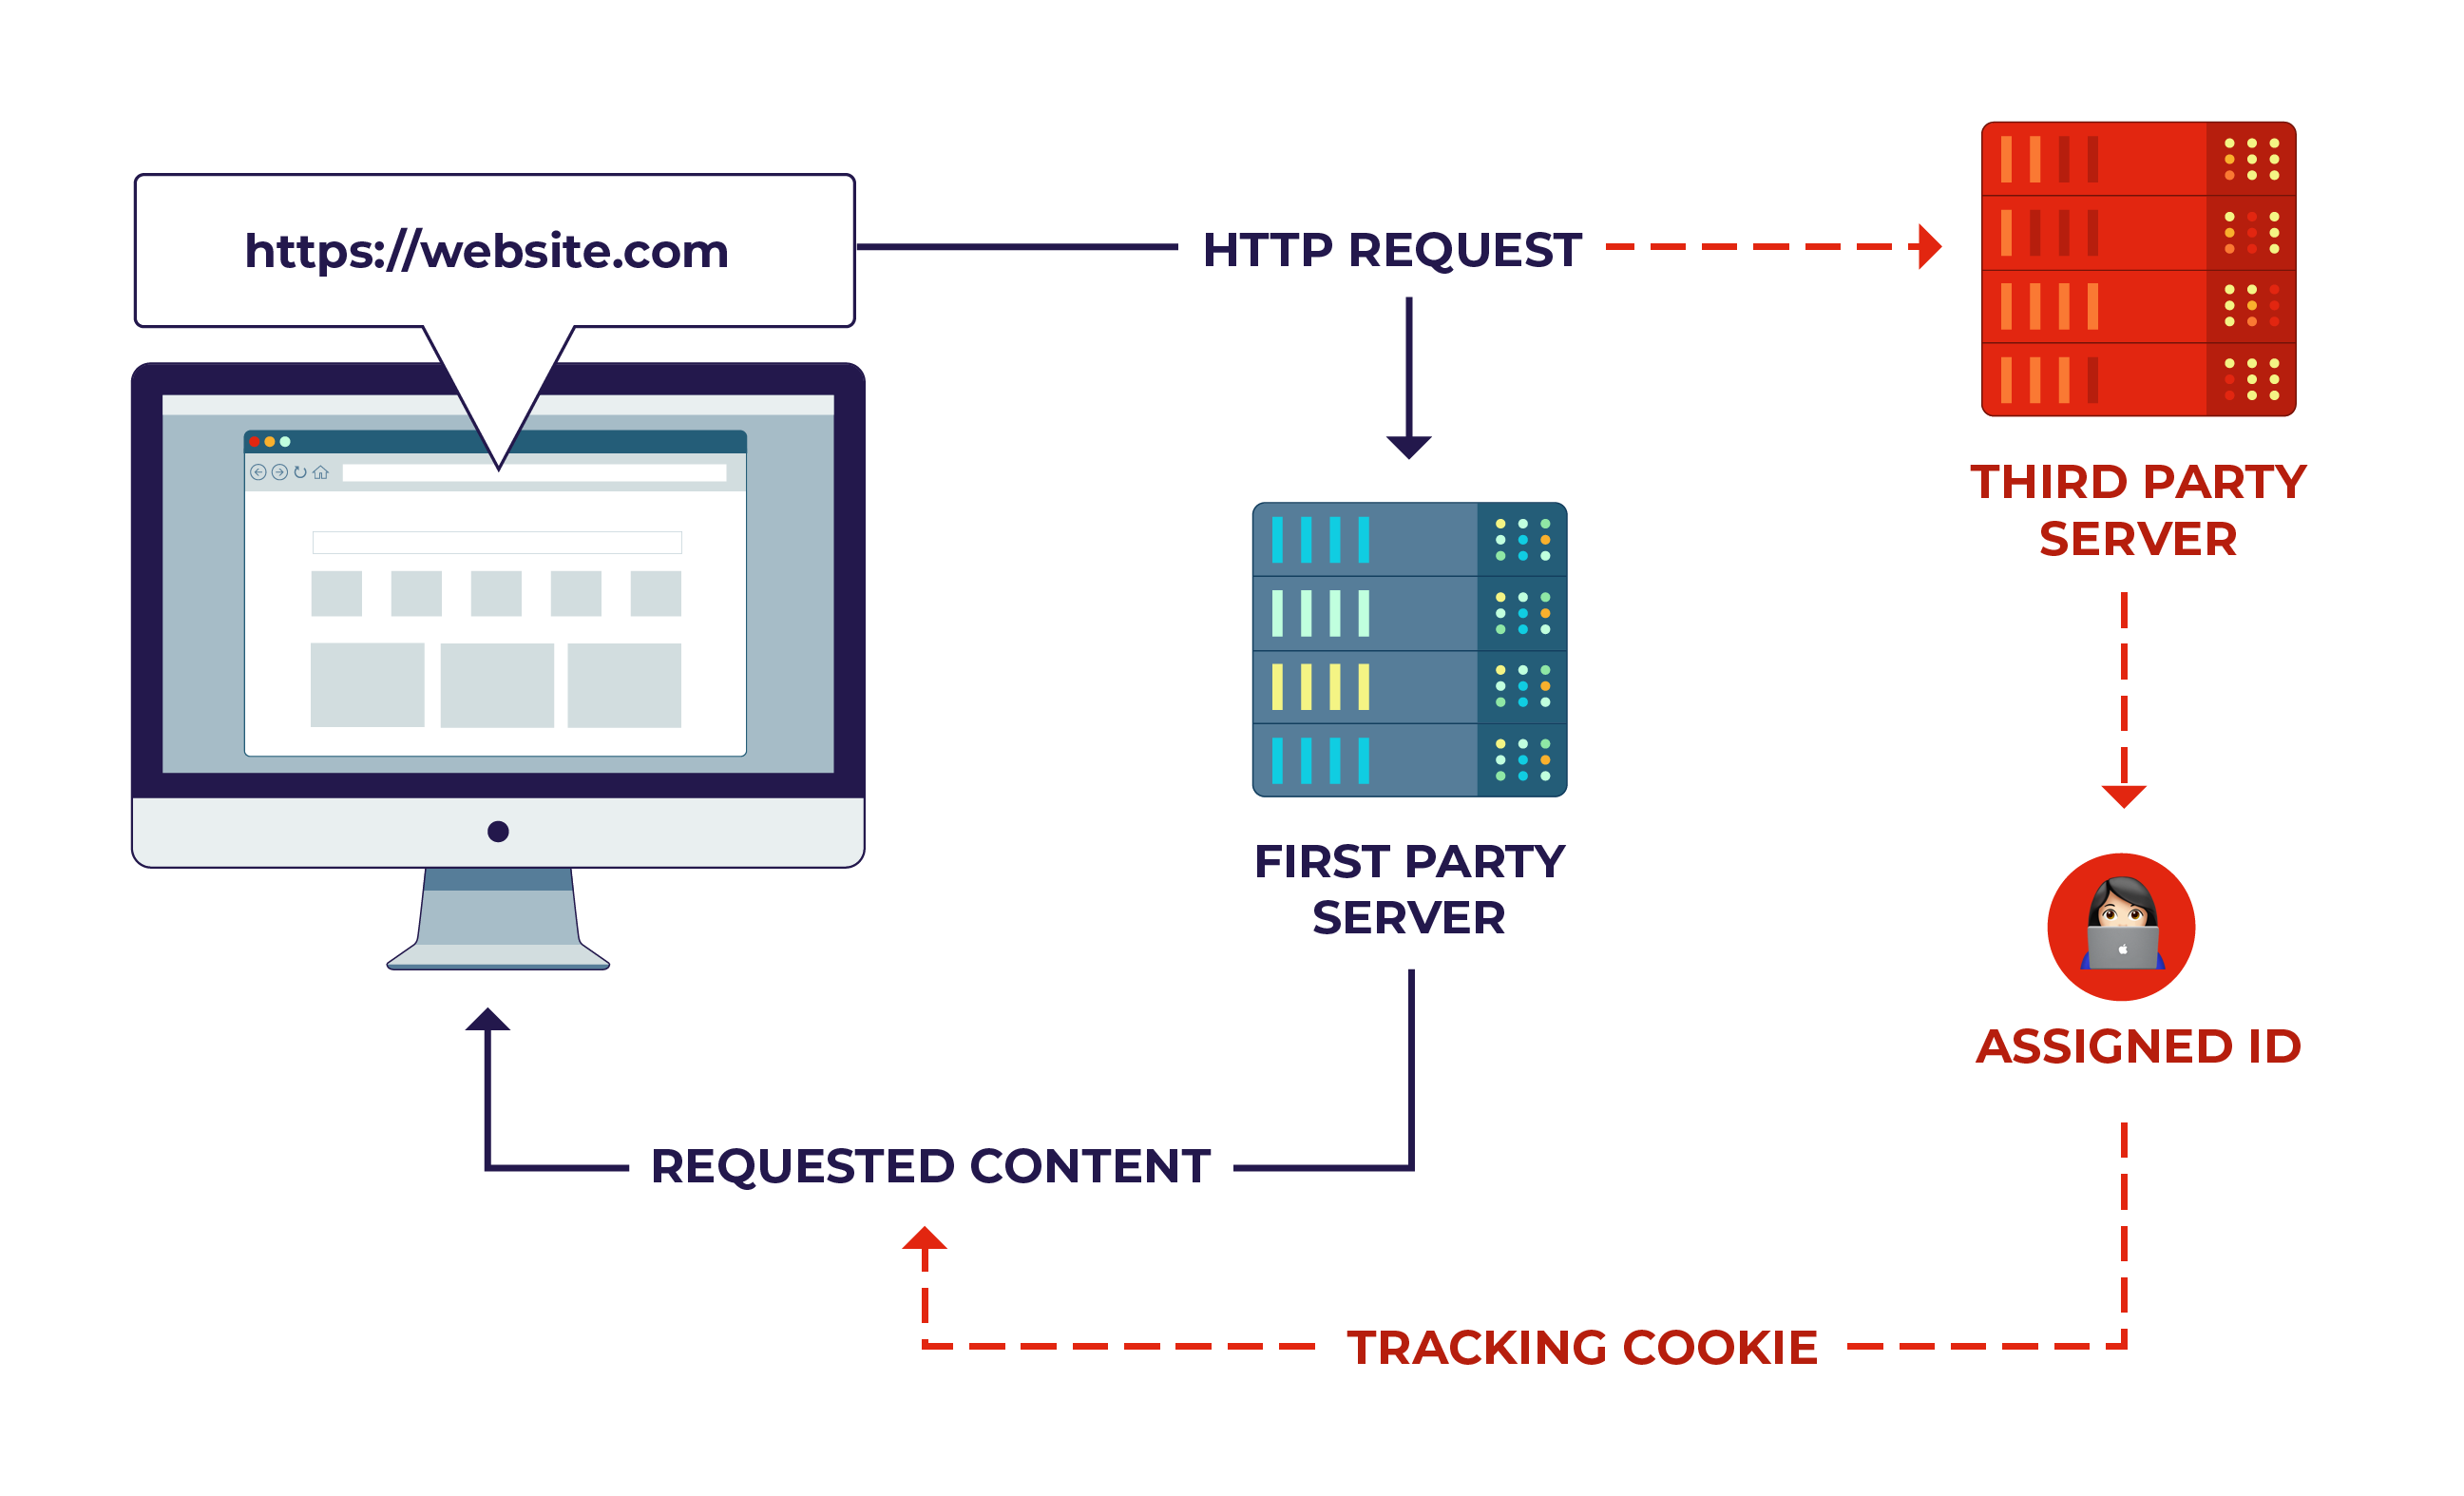 //website.com. This is shown as a HTTP request, processed by a first-party server, and delivering the requested content. A separate red line shows that the HTTP request is also forwarded to a third-party server, given an assigned ID, and a tracking cookie that is included in the requested content.